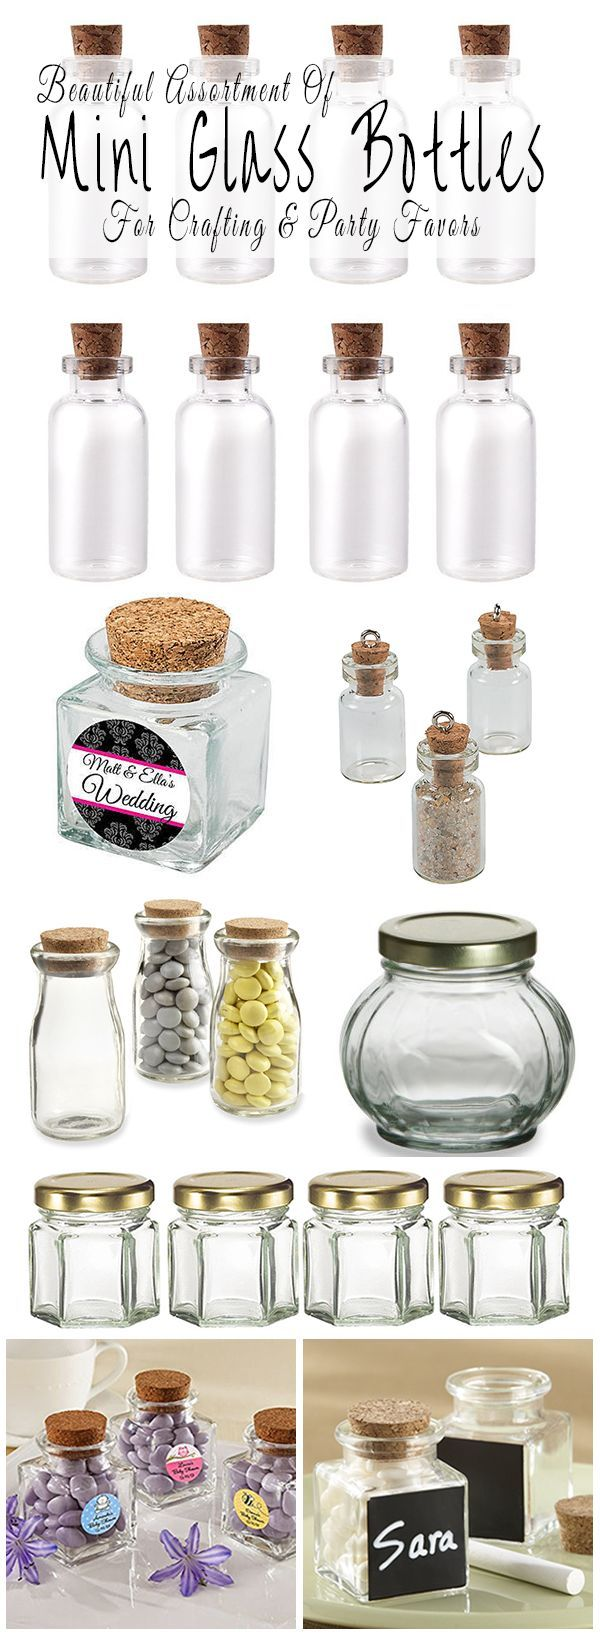 Where to buy mini glass bottles and jars for making diy party favors and table decorations for a wedding, baby shower, birthday, anniversary or graduation party. There are also tiny mini glass bottles for making miniature art and jewelry. | Glitter 'N' Spice